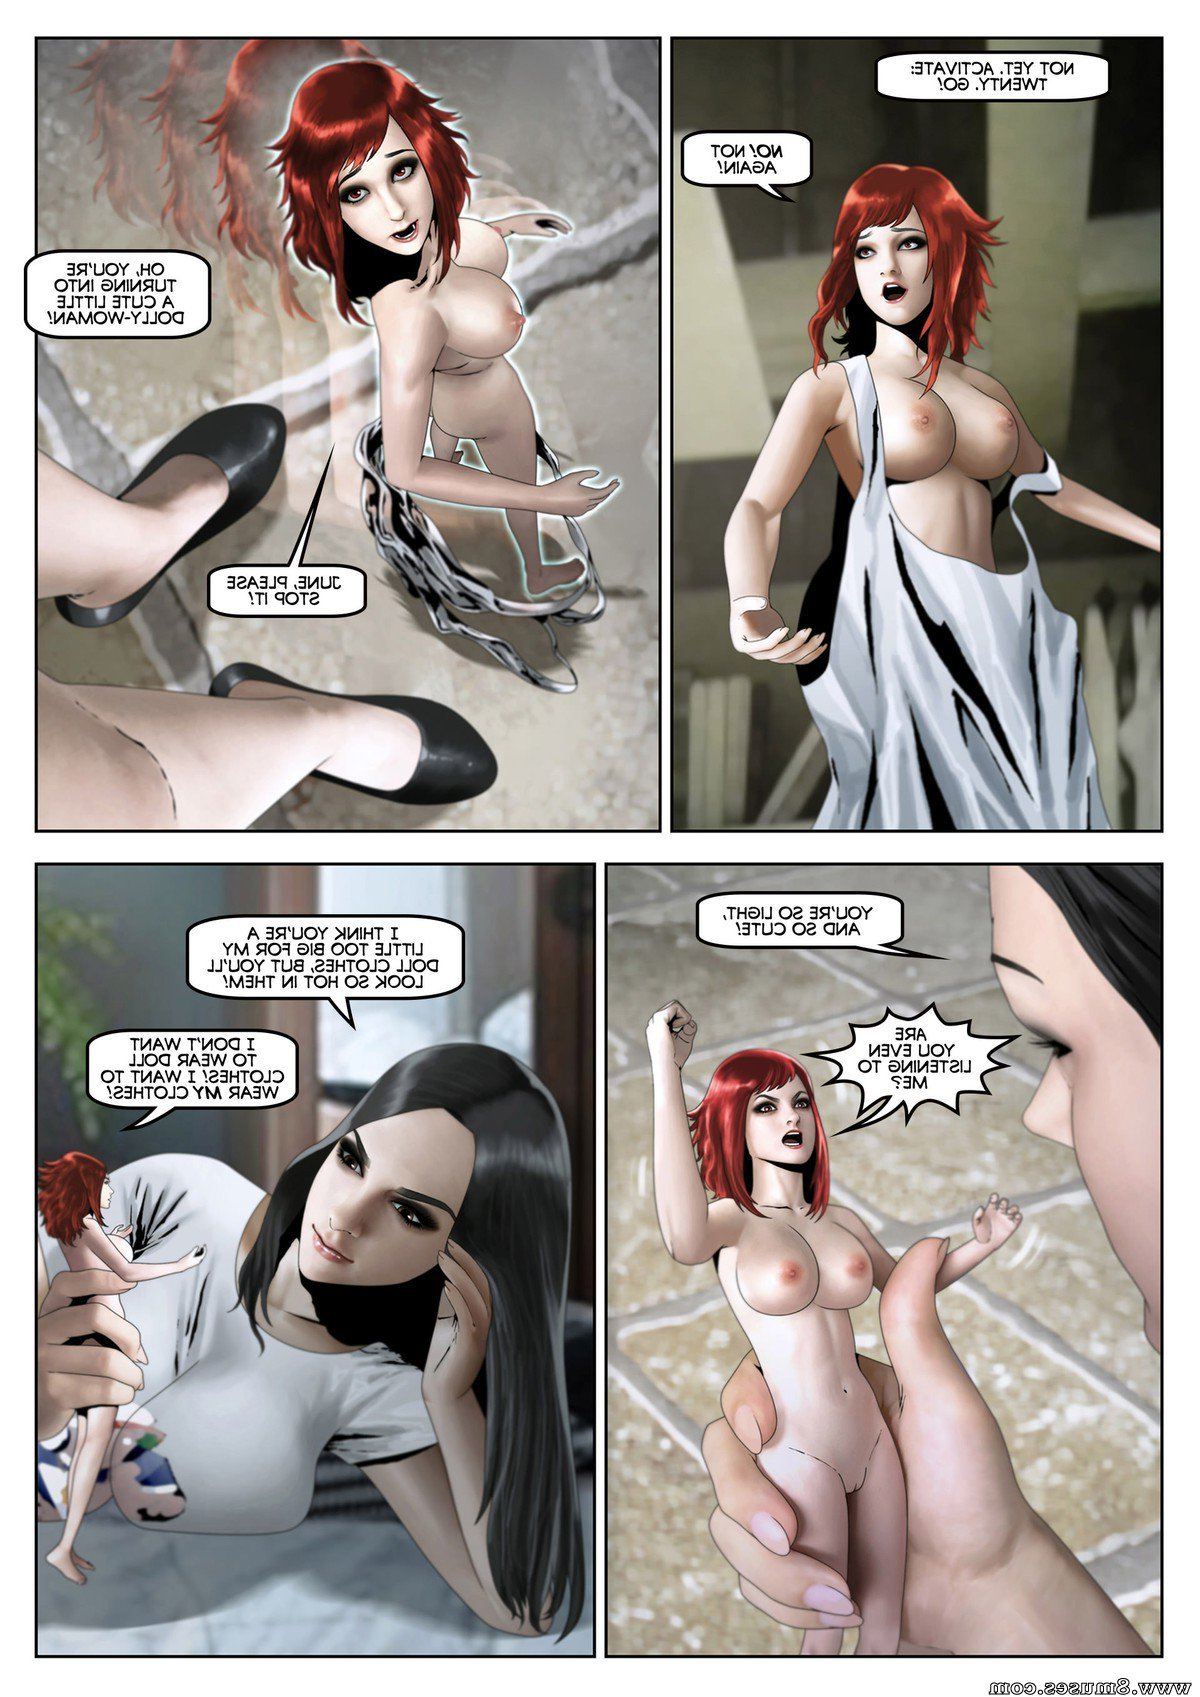 Giantess-Fan-Comics/Maya-and-June/Issue-1 Maya_and_June_-_Issue_1_6.jpg